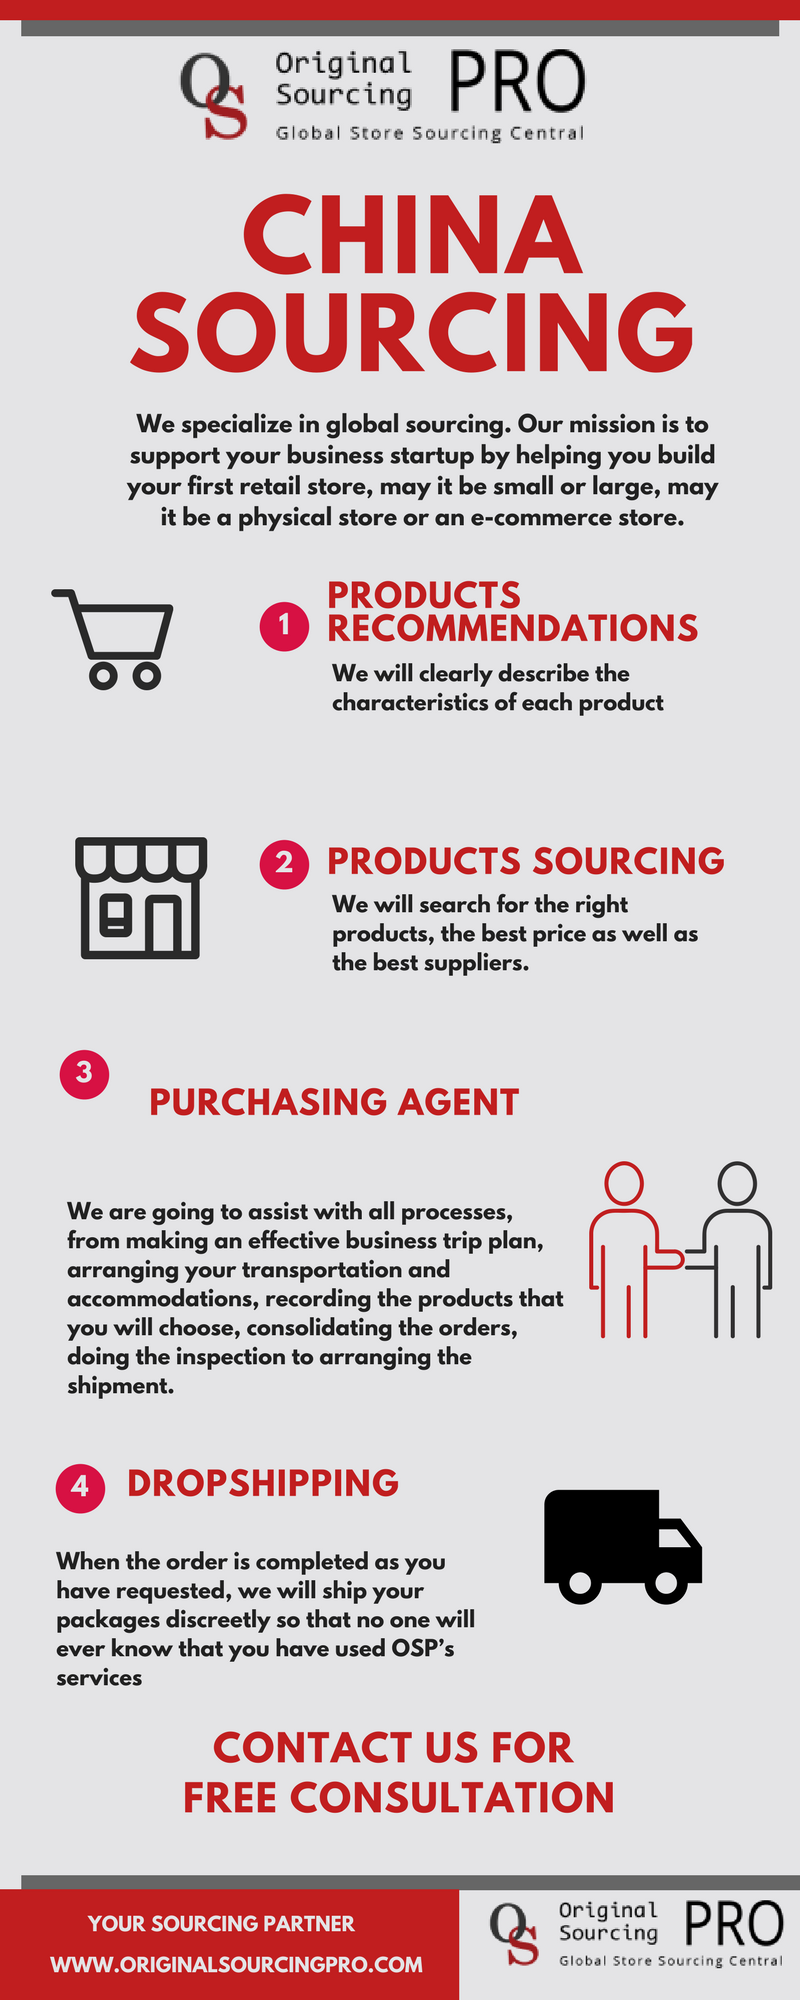 China Products Dropshipping, Sourcing & Recommendations